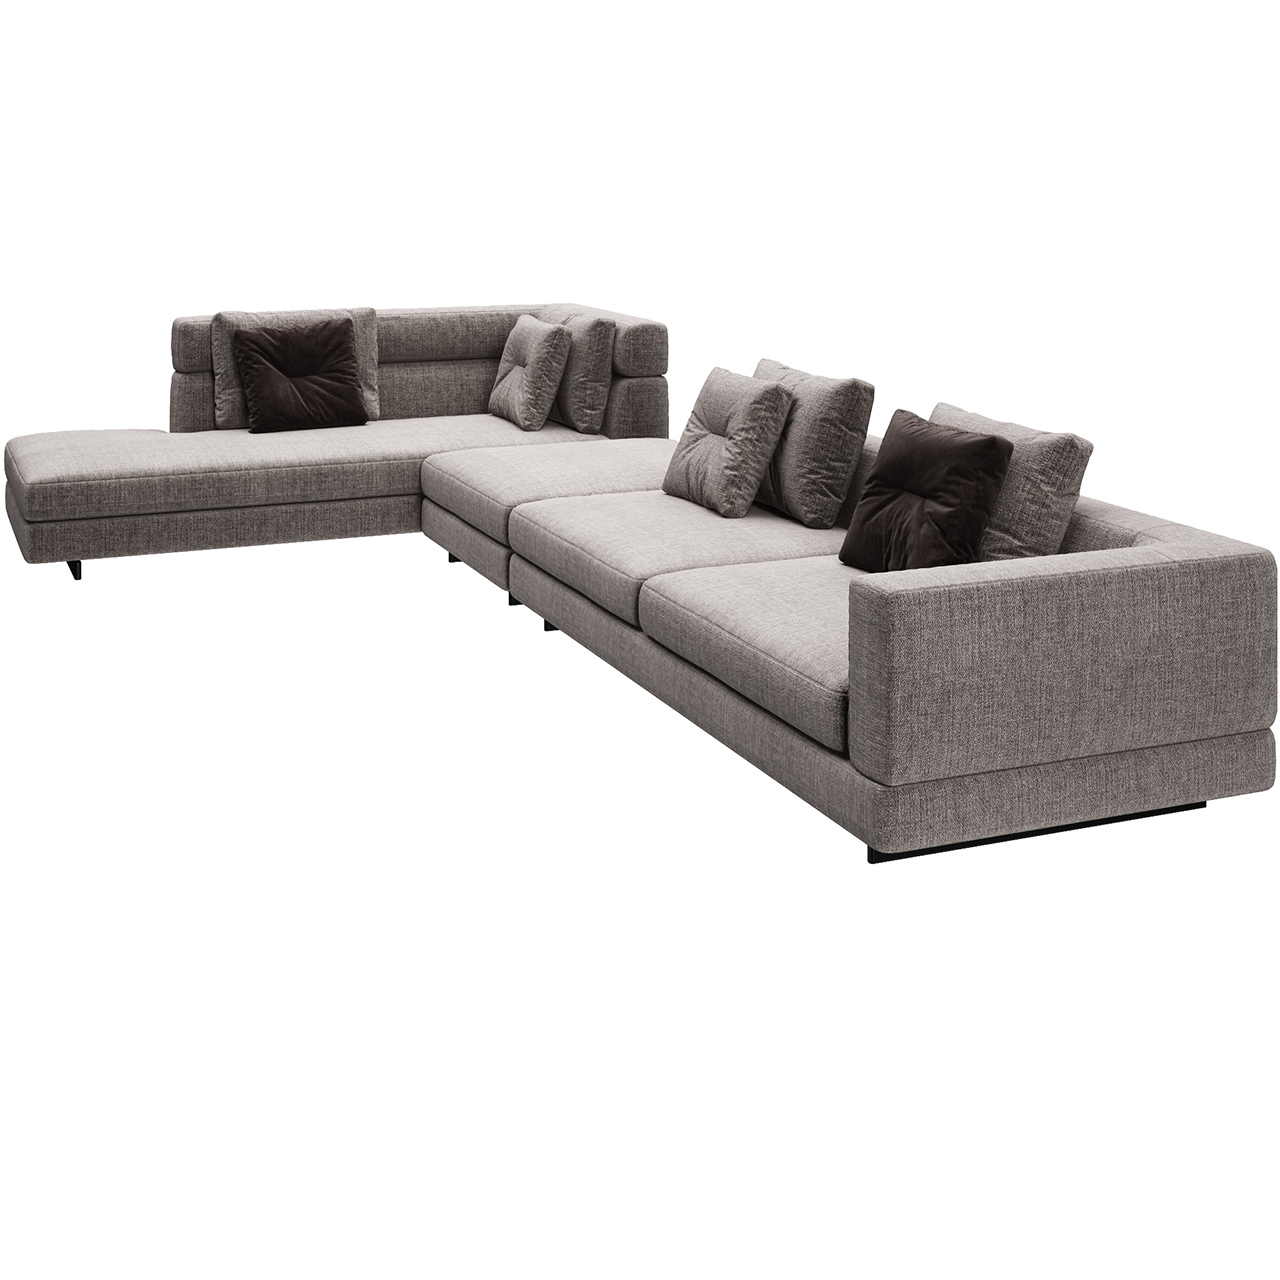 Alexander 06 Sofa by Minotti